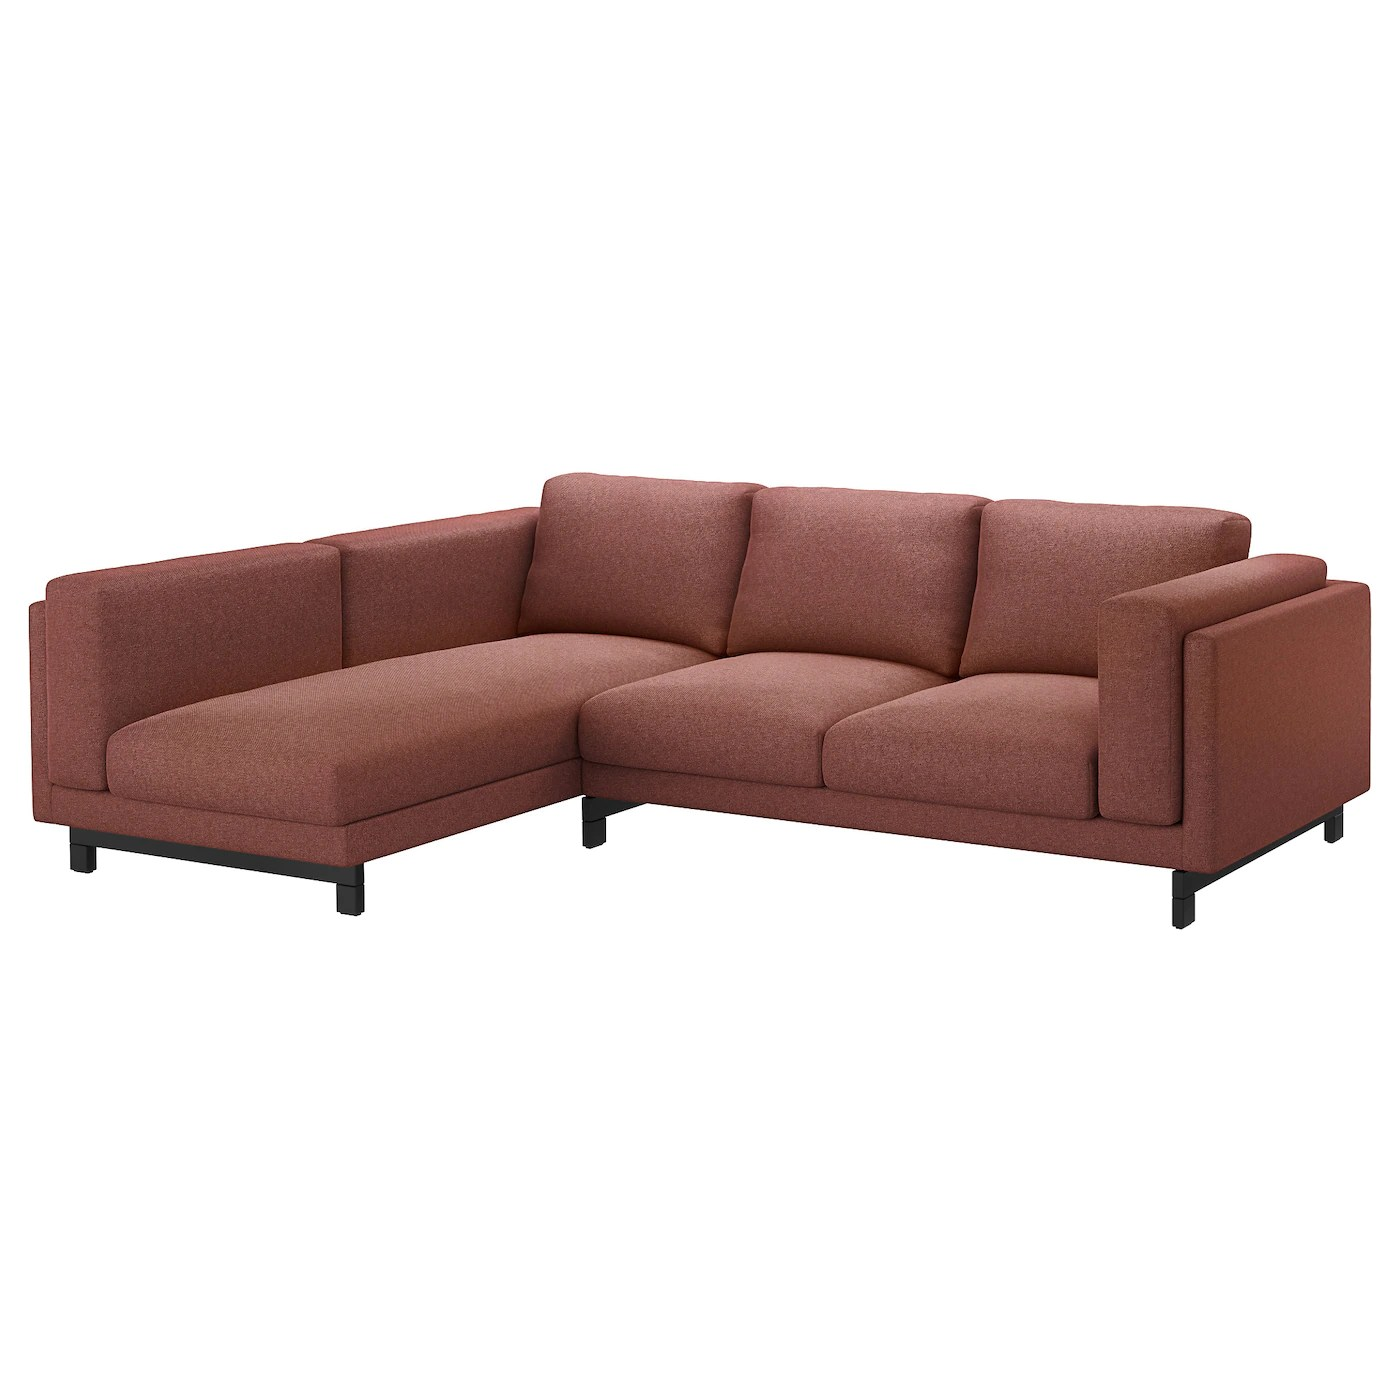 sofa w chaise italsofa recliner replacement cable nockeby two seat longue left tallmyra rust